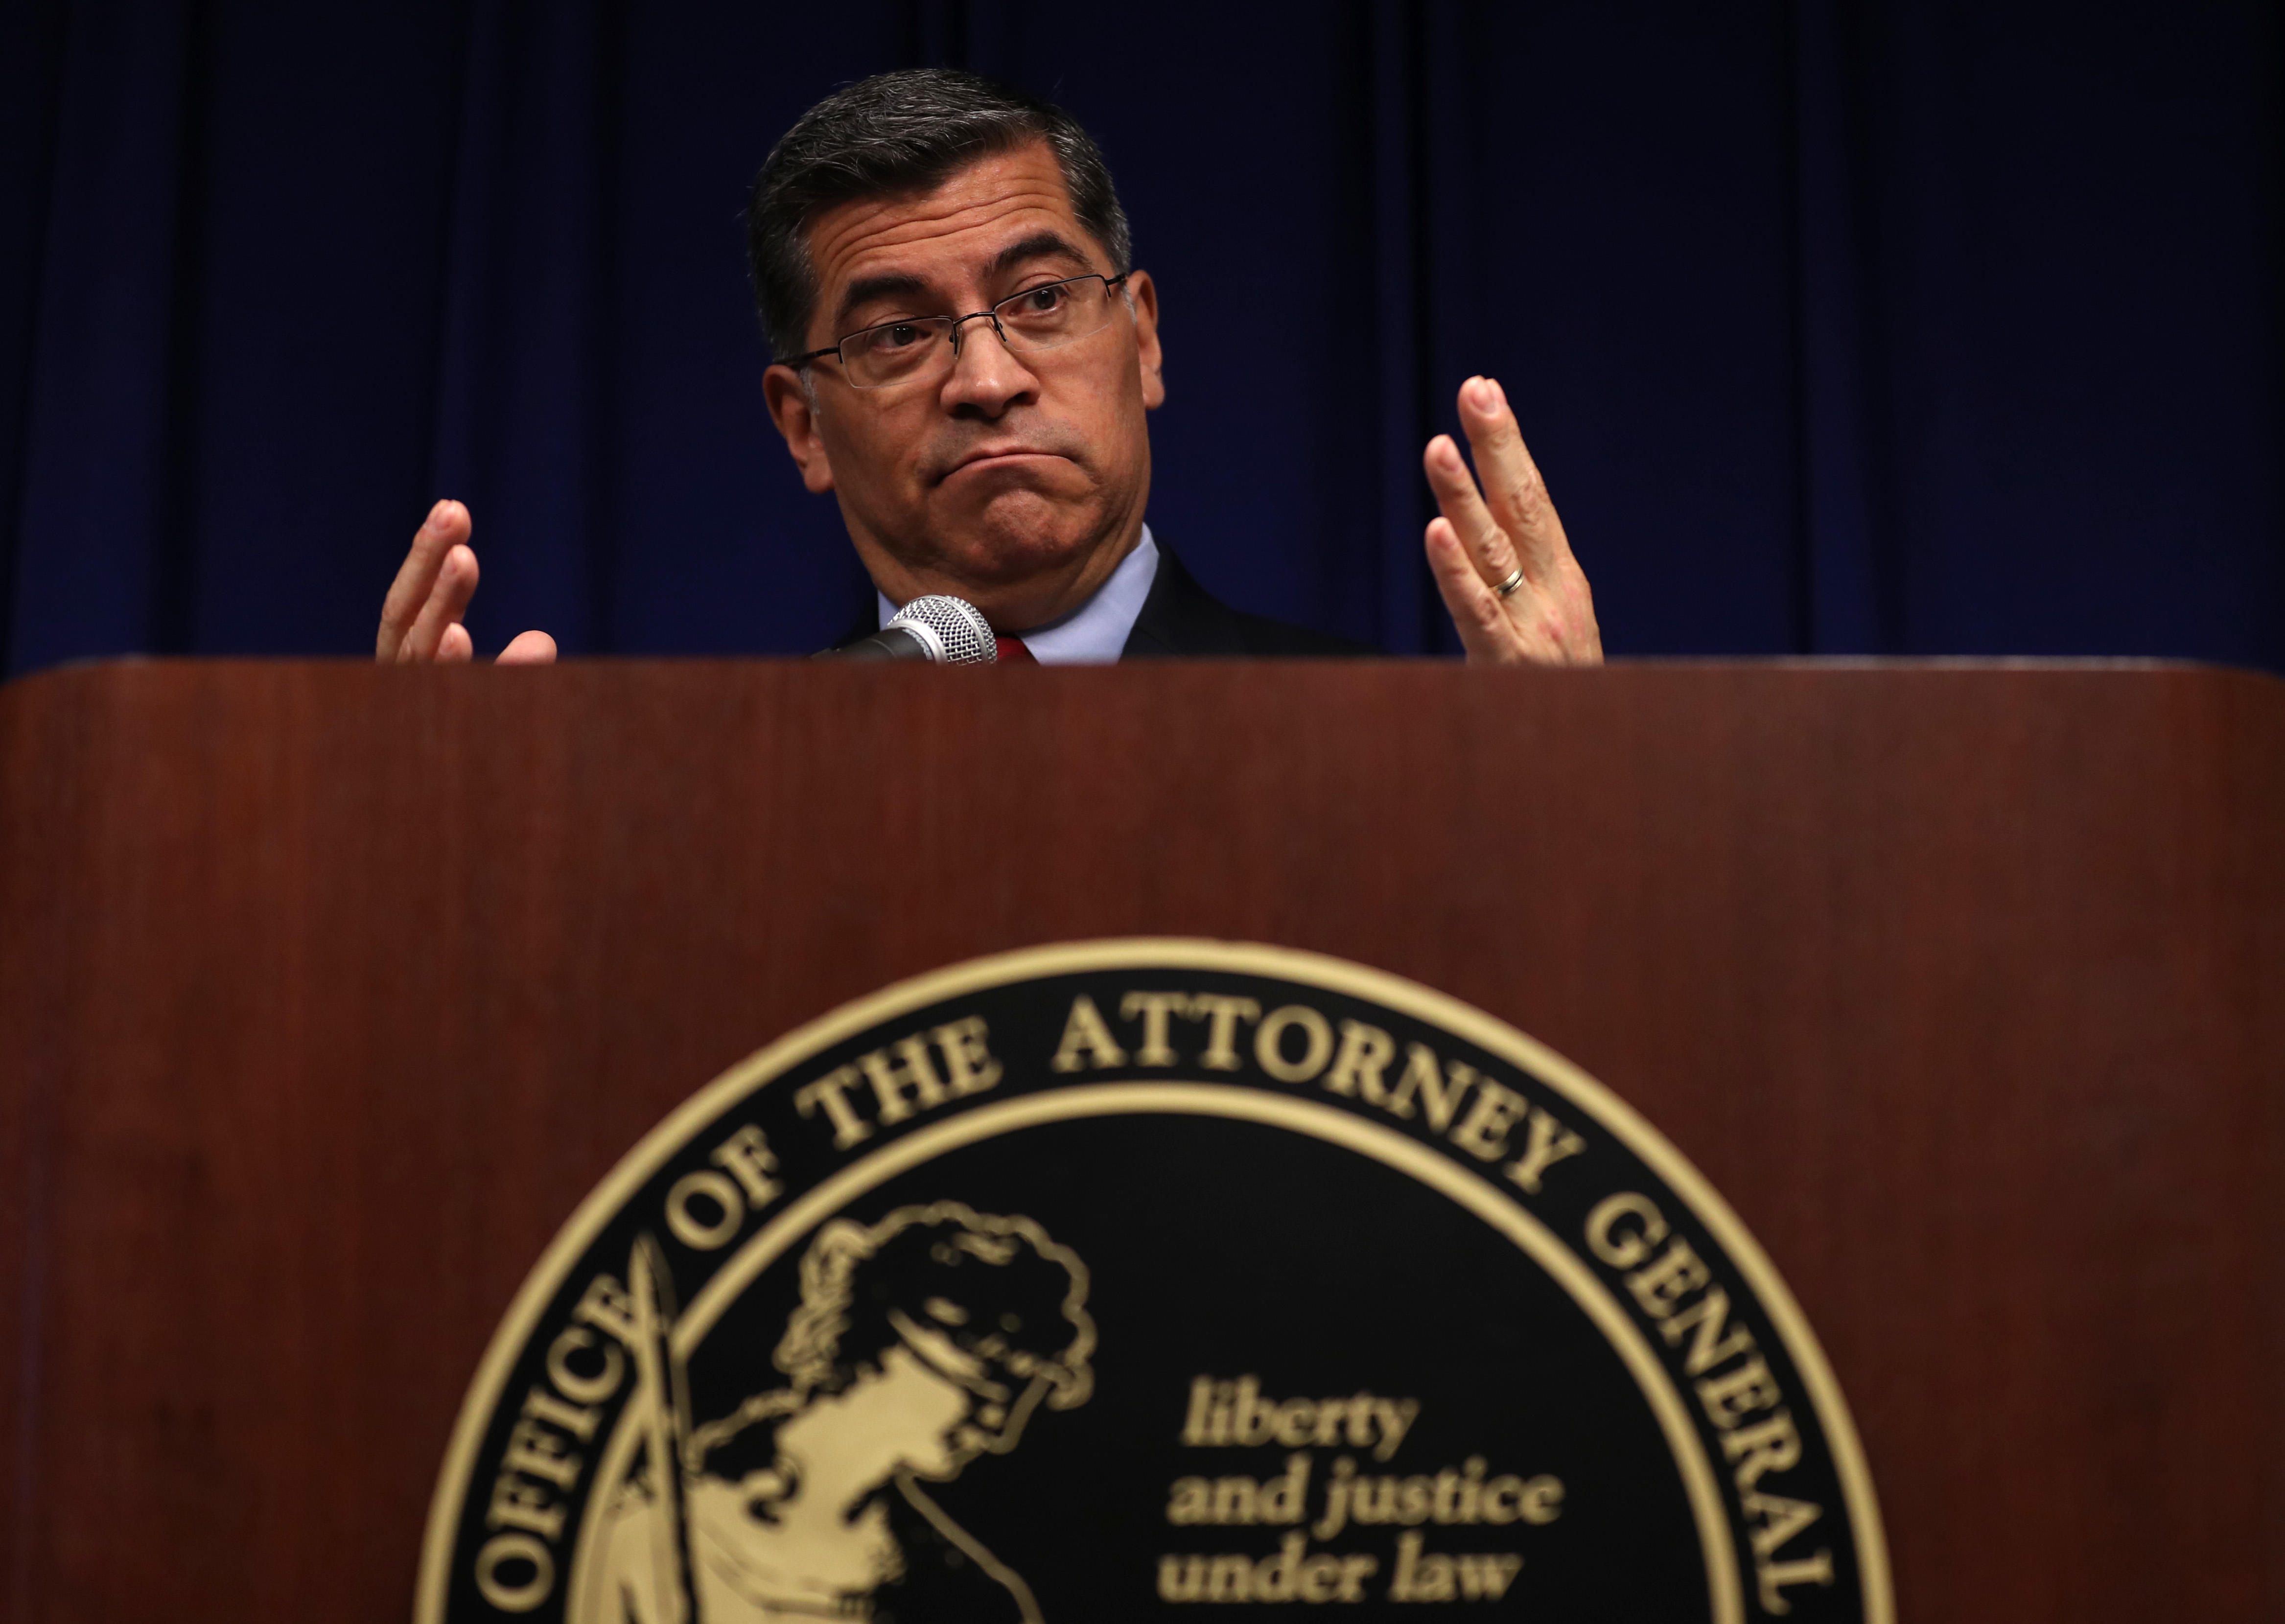 California Attorney General Xavier Becerra Announces Results Of His Office's Investigation Into Stephon Clark Killing